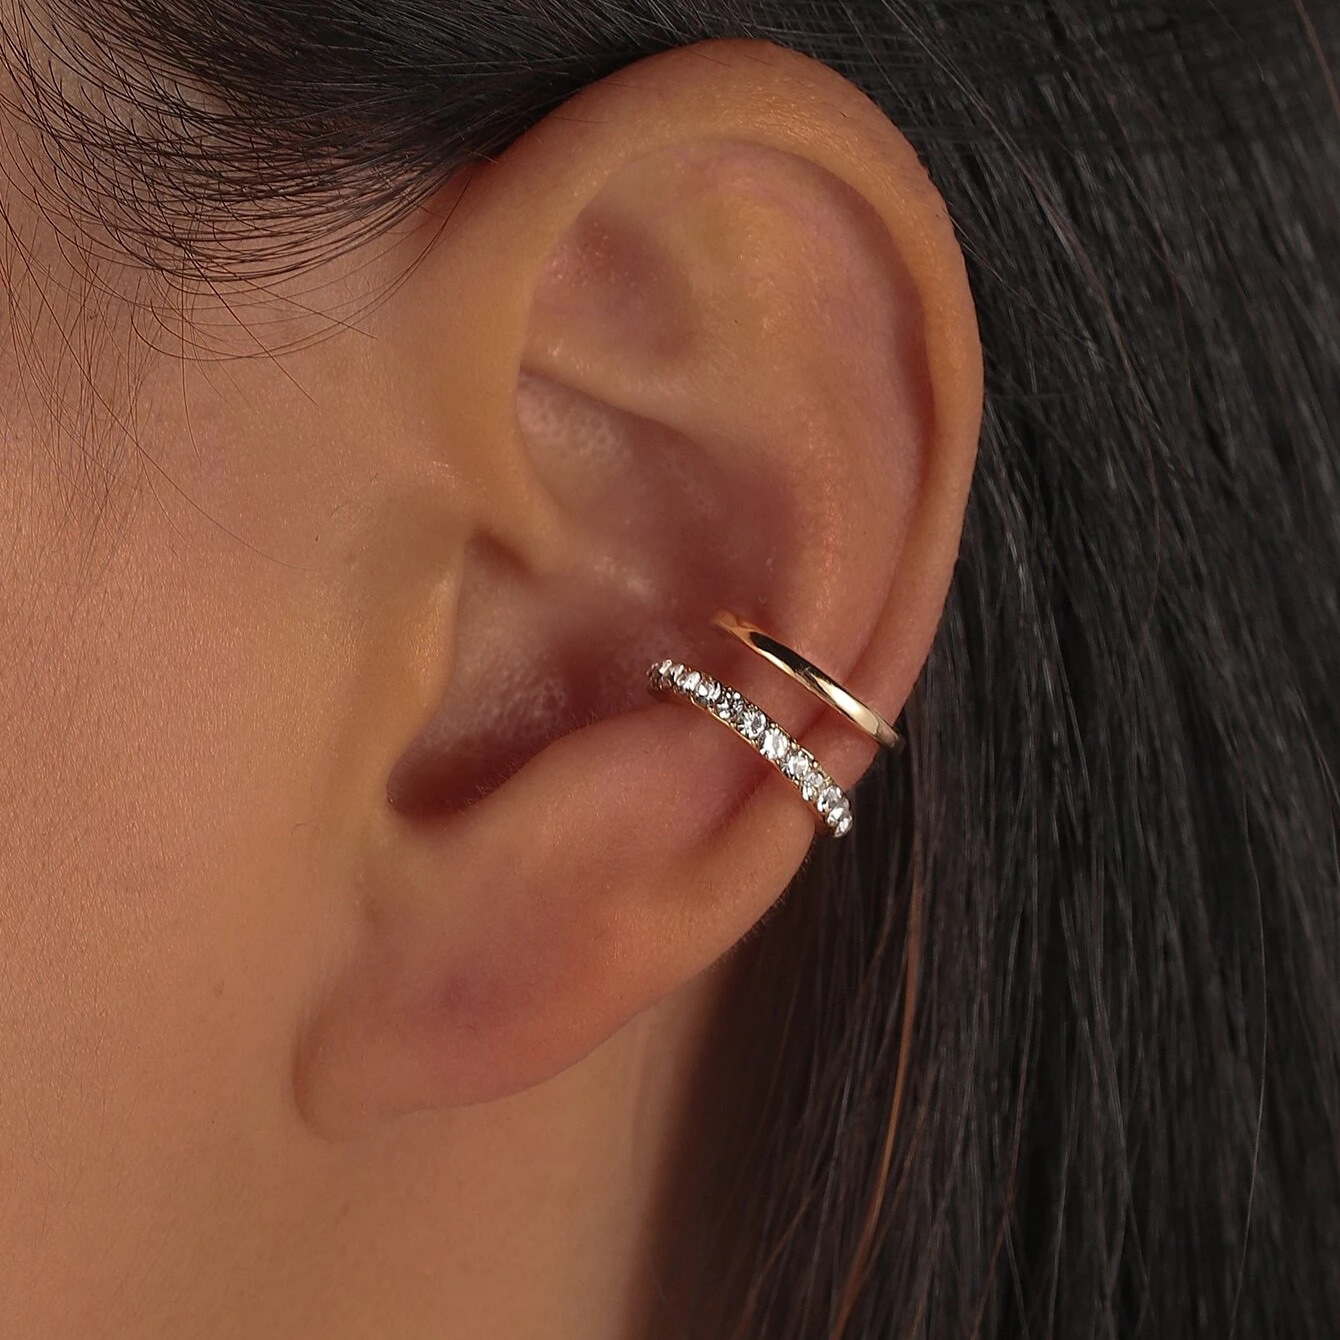 Double-Layer Rhinestone-Encrusted Clip-on Earrings for Stylish Look